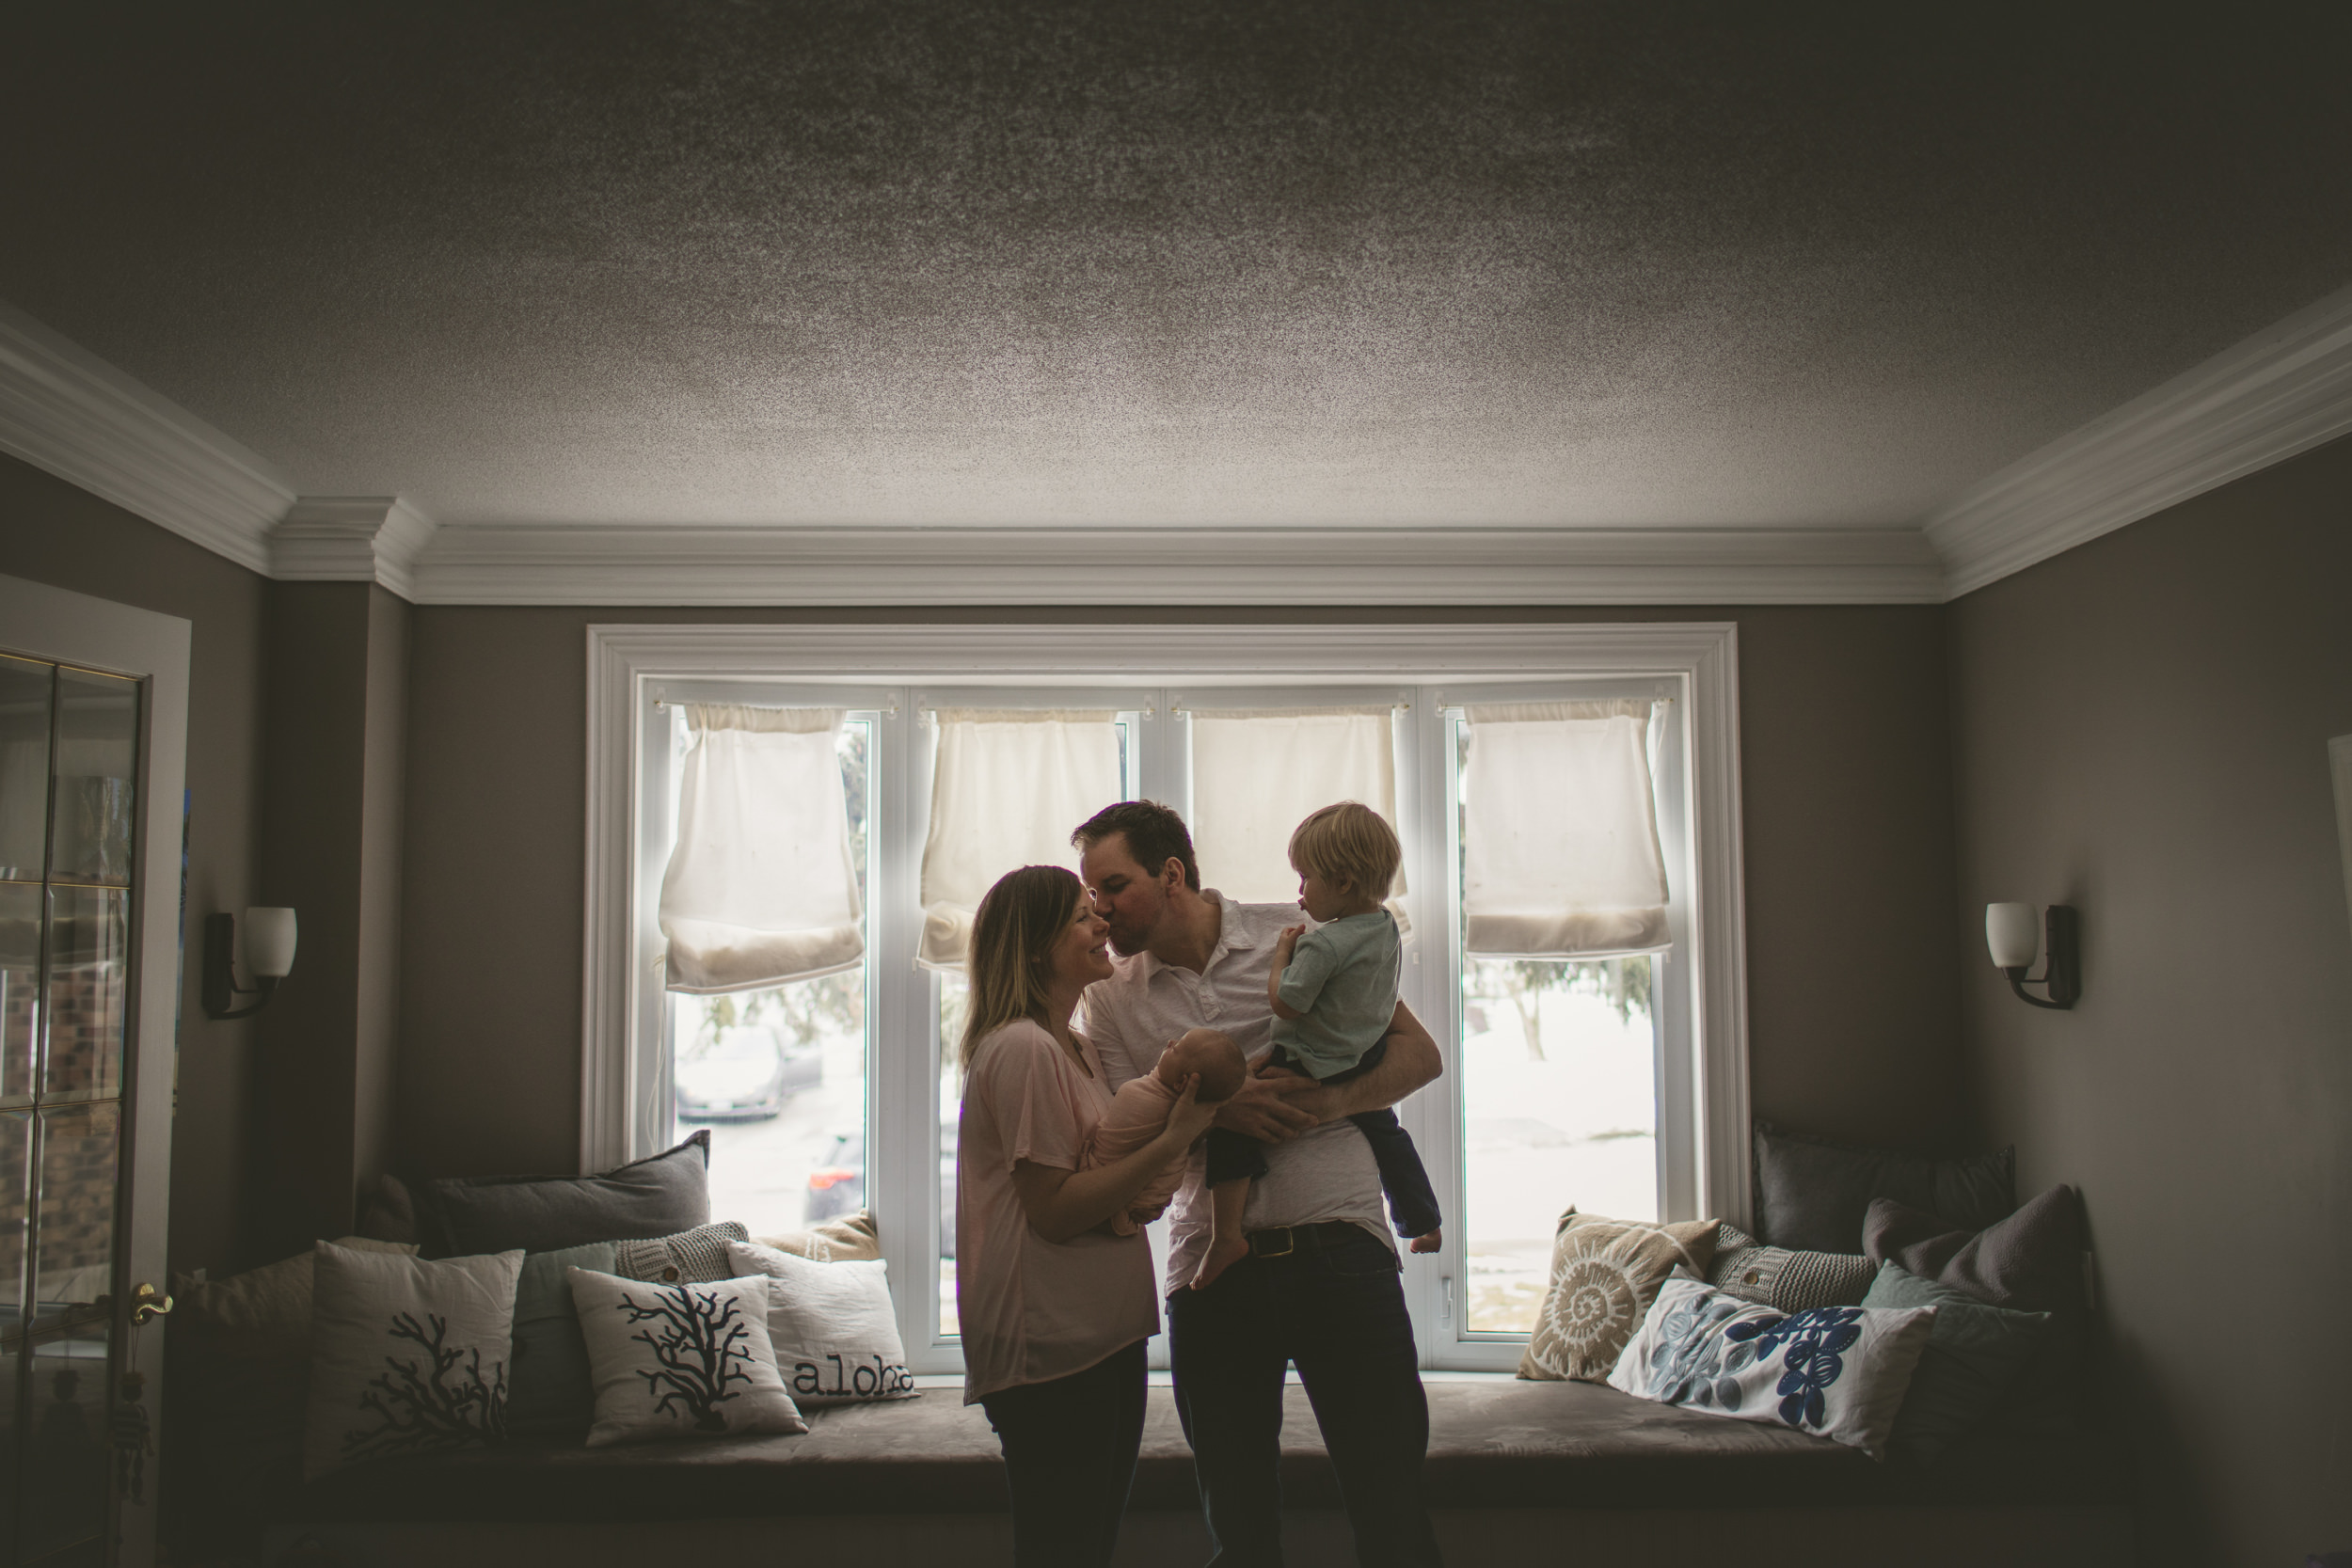 toronto lifestyle photographer ten2tenphotography 85 - Toronto Newborn Photographer: Baby Isla